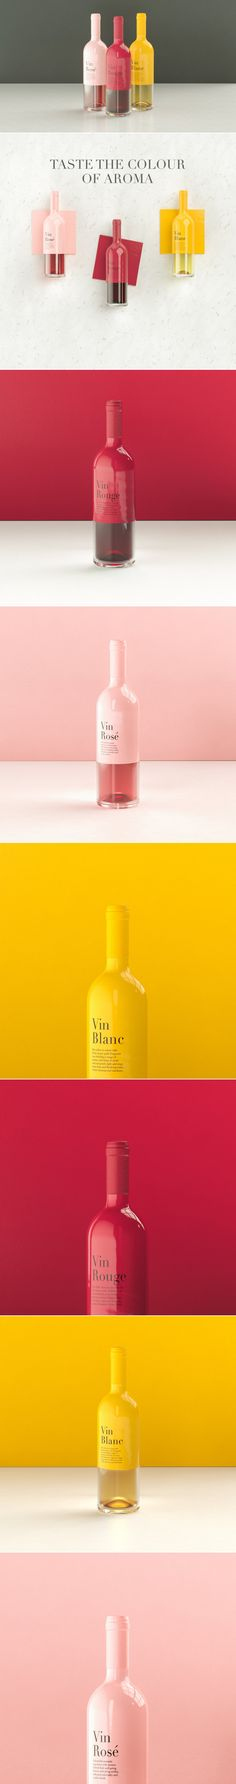 A Slick Wine Bottle Concept that Merges the Senses — The Dieline | Packaging & Branding Design & Innovation News